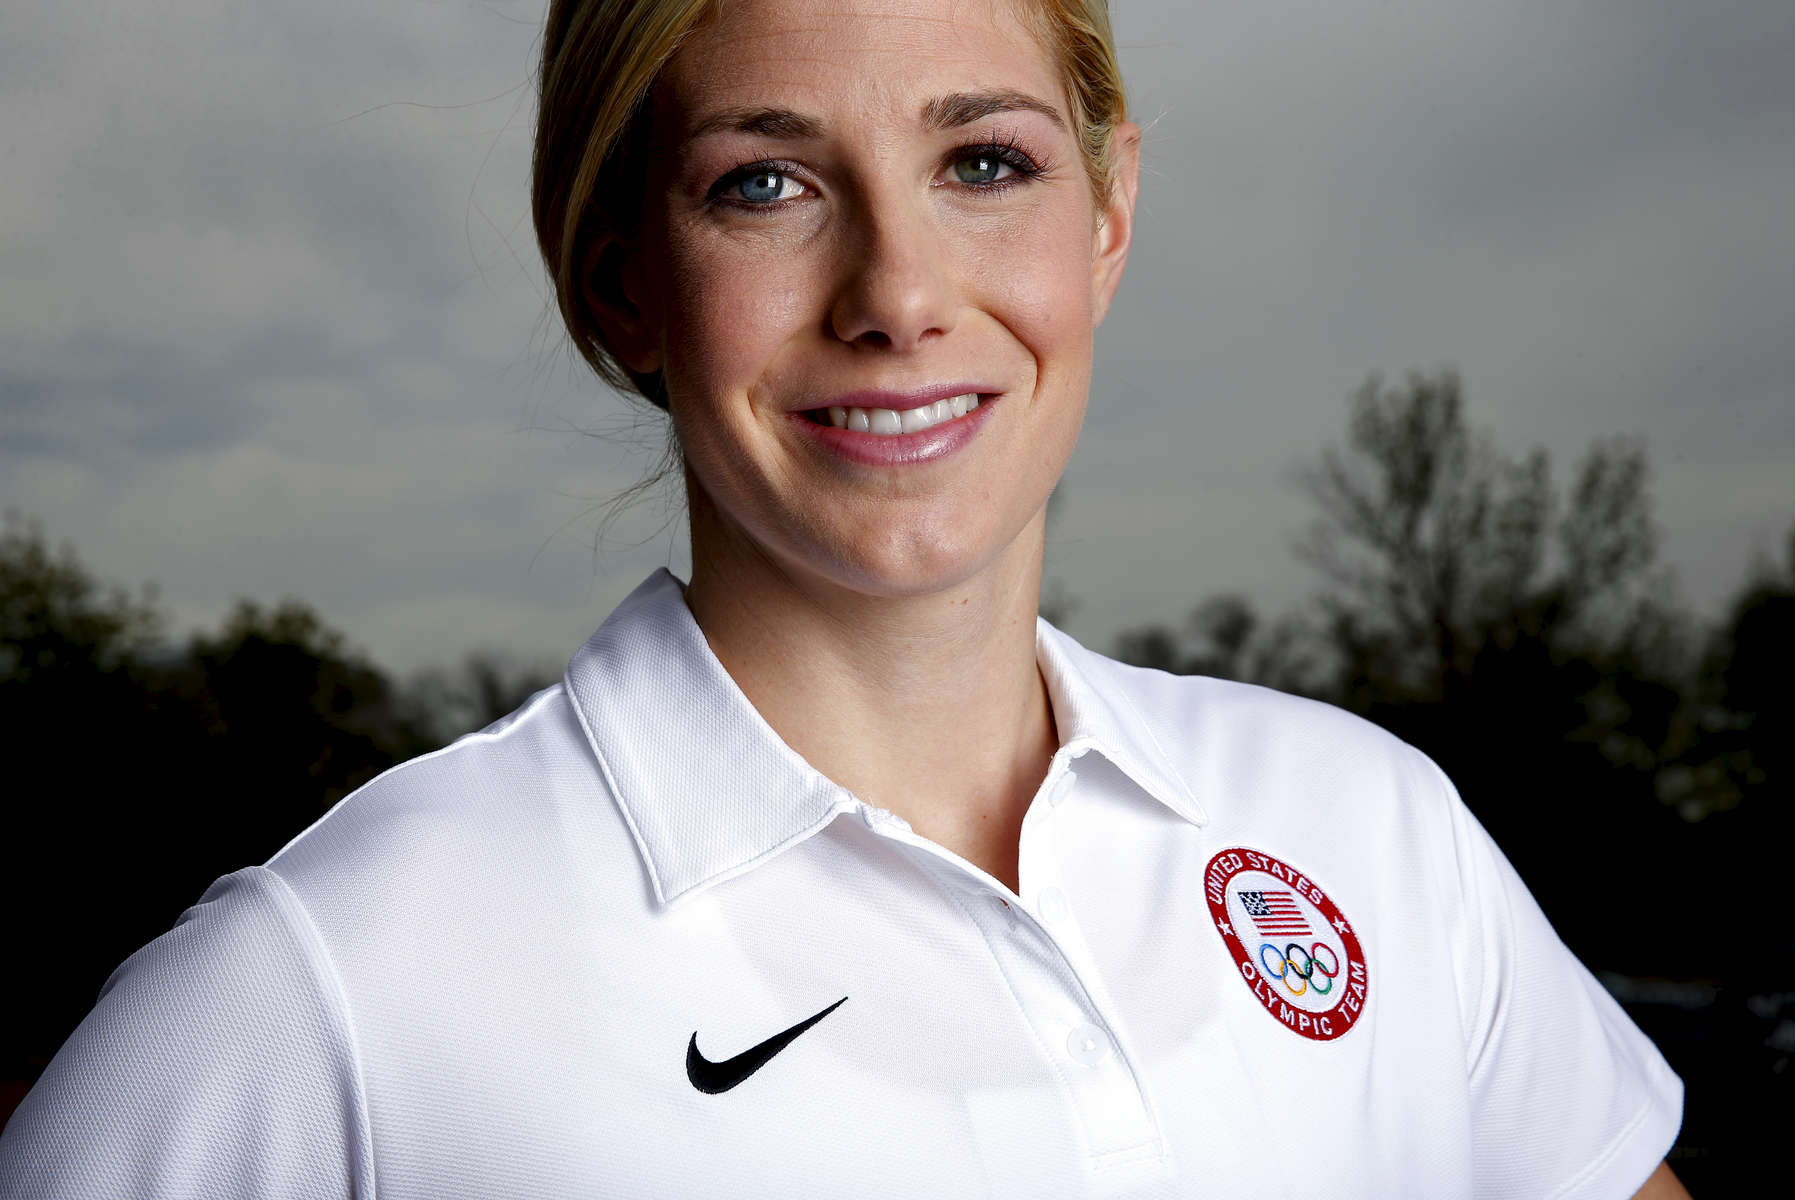 Modern pentathlete Grace Kittle poses during the USOC portrait shoot at the United States Olympic Training Center on May 14, 2015 in Colorado Springs, Colorado.